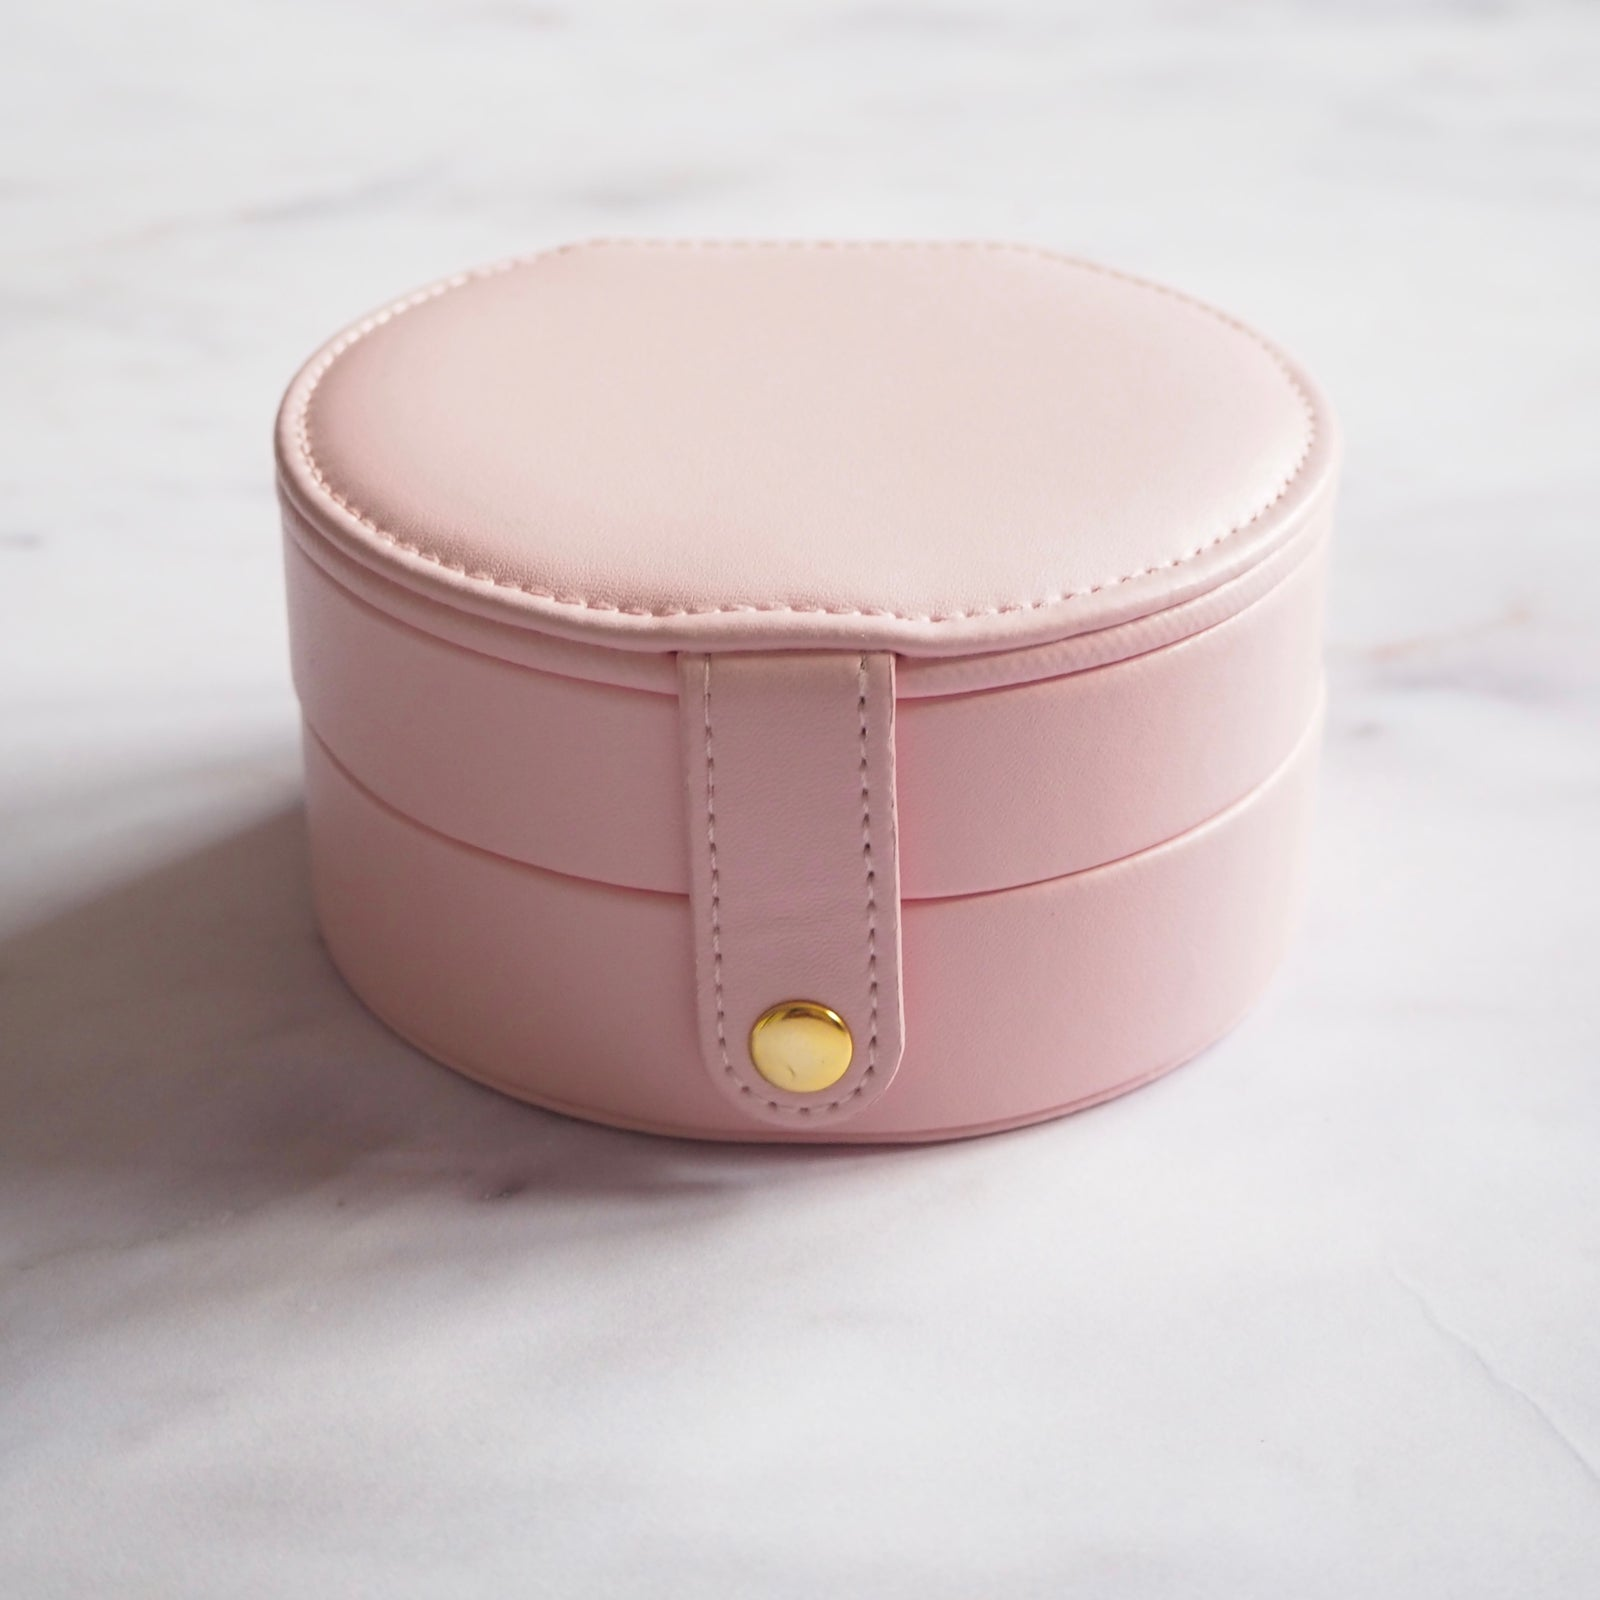 Jewellery Case - Small Round